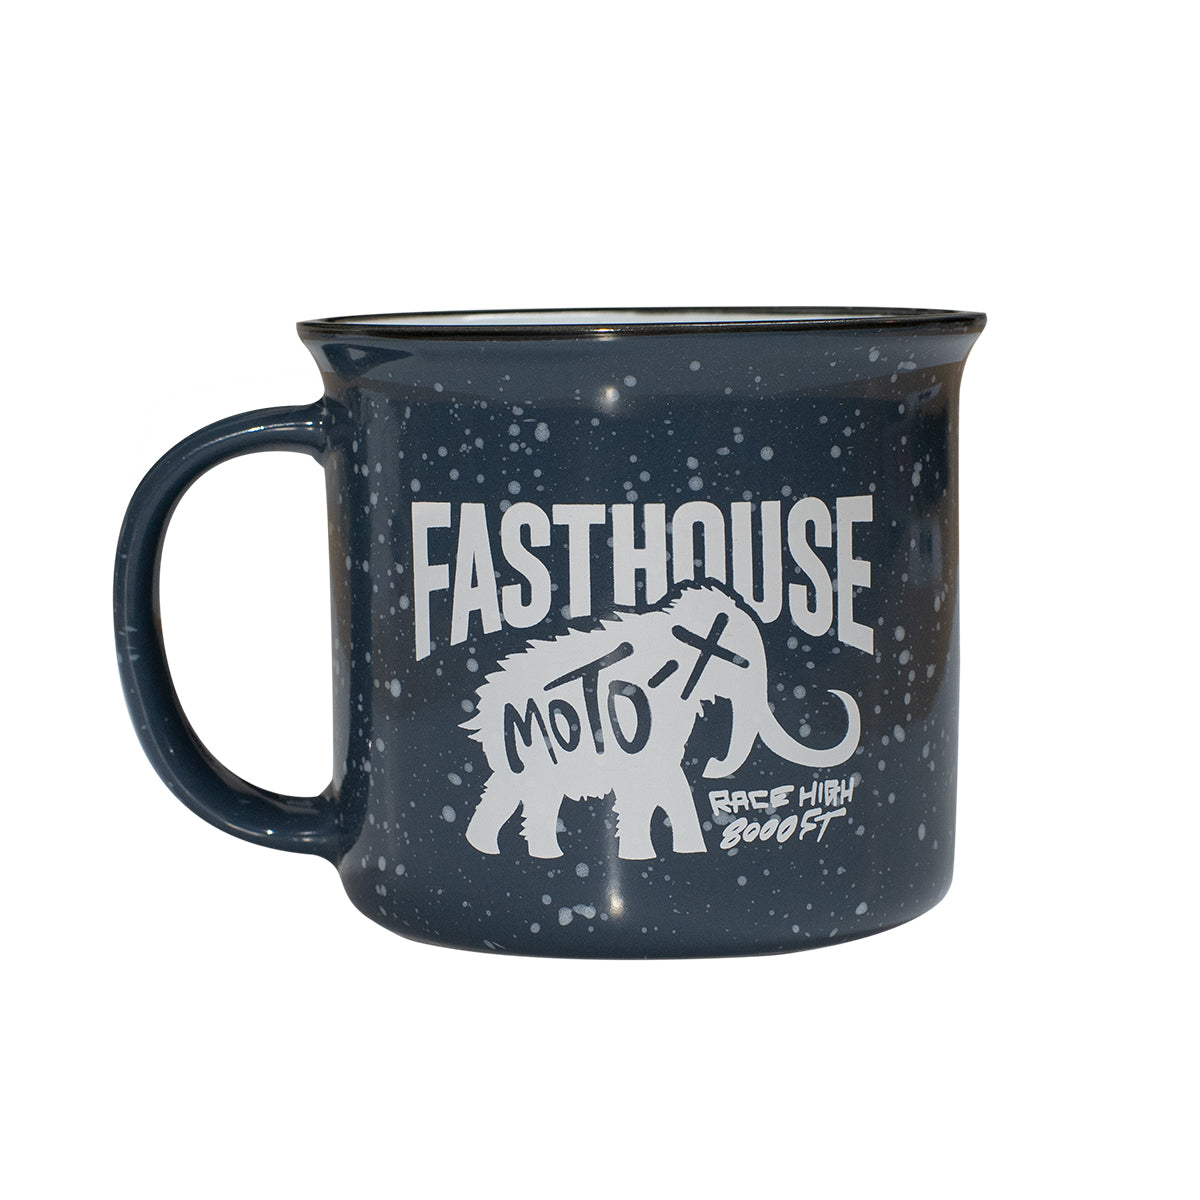 Fasthouse - Mammoth Moto Mug 19 Grey